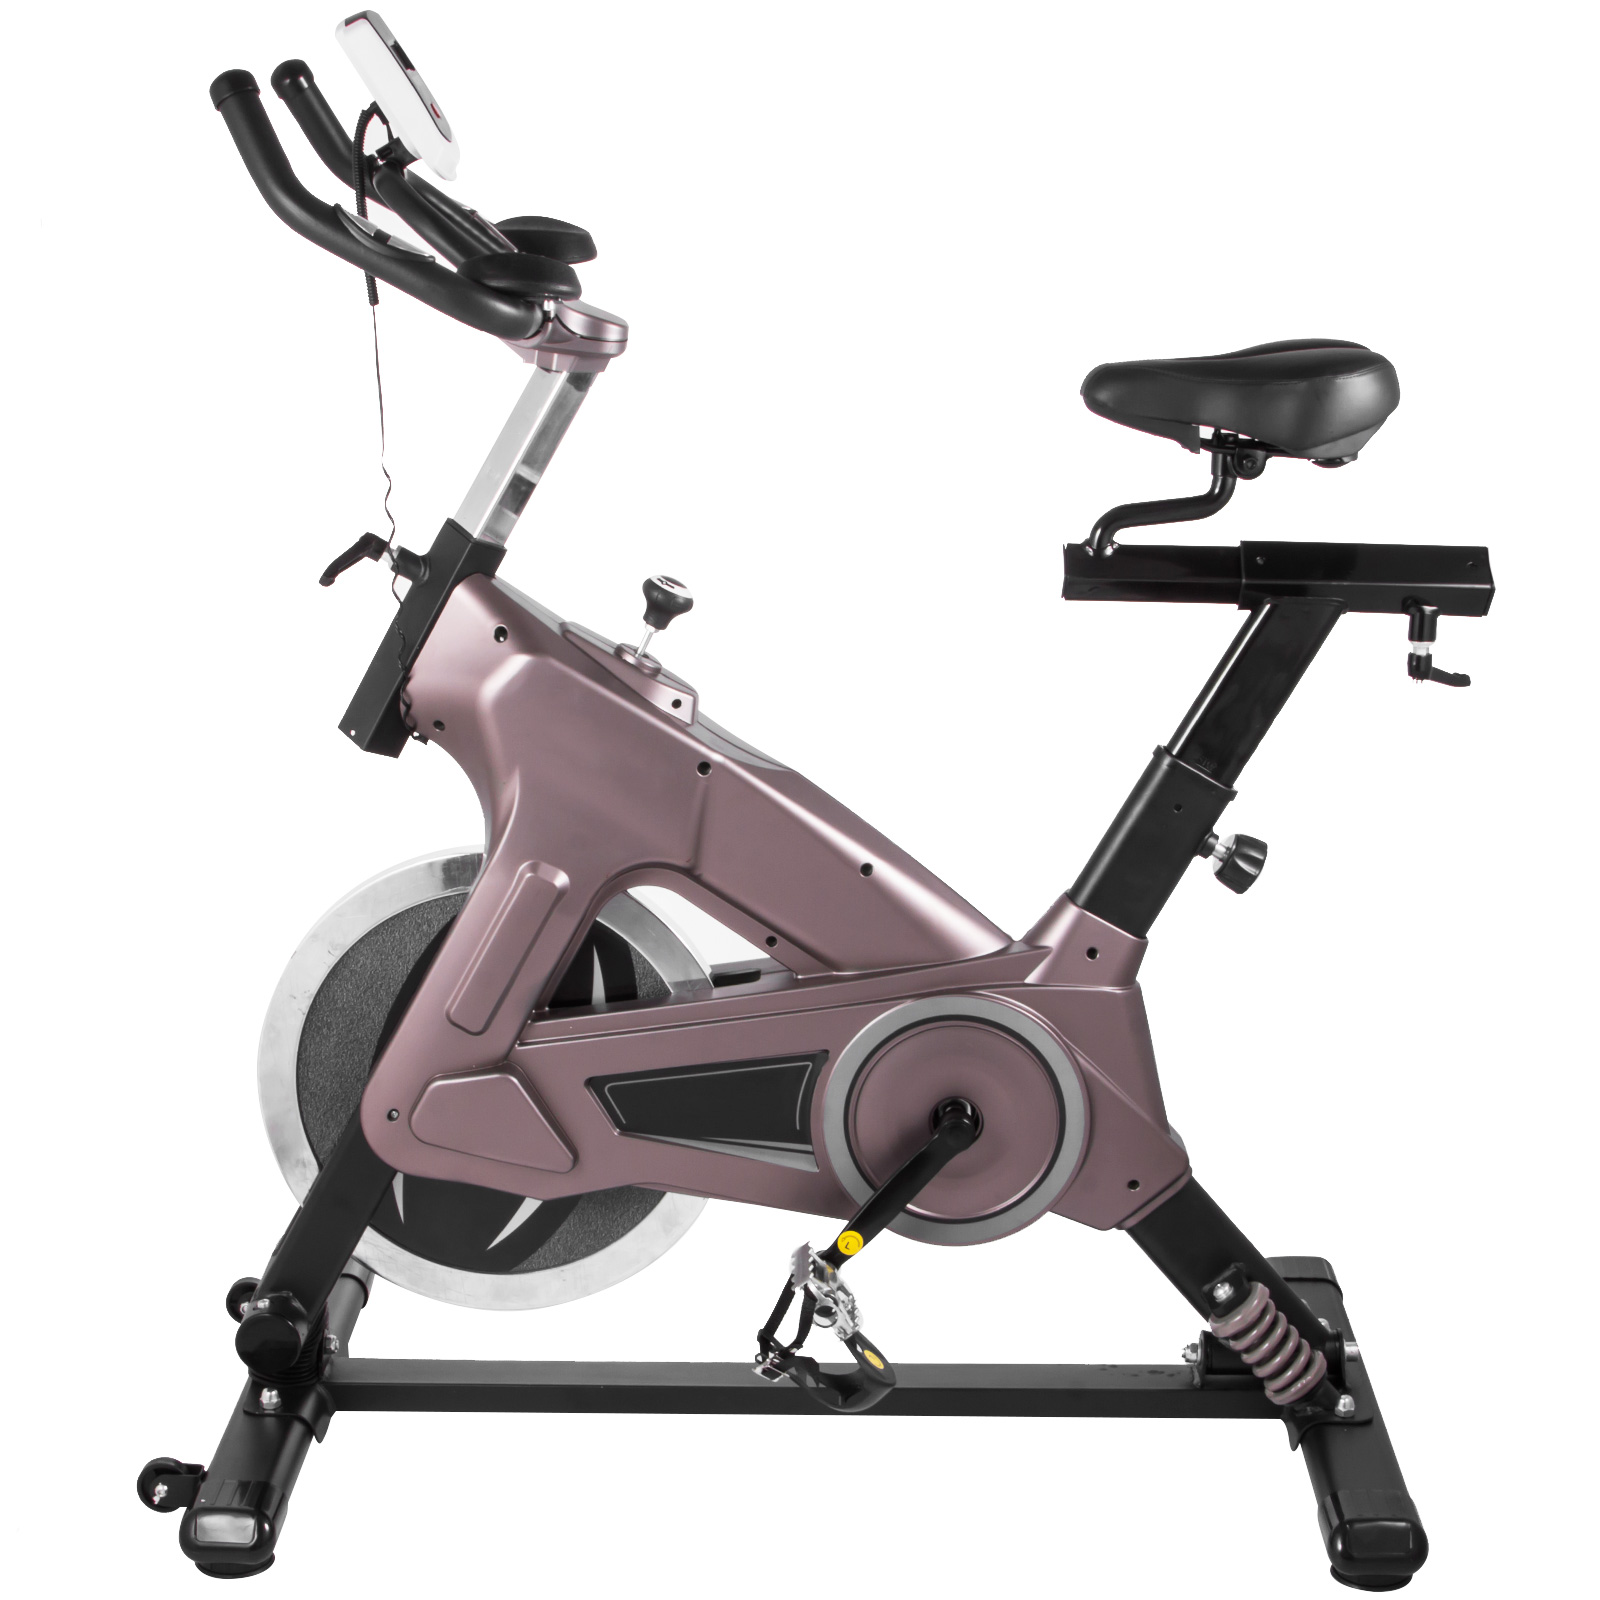 Multi-style-Magnetic-Exercise-Bike-office-Bicycle-under-Desk-Fitness-Cardio miniature 178